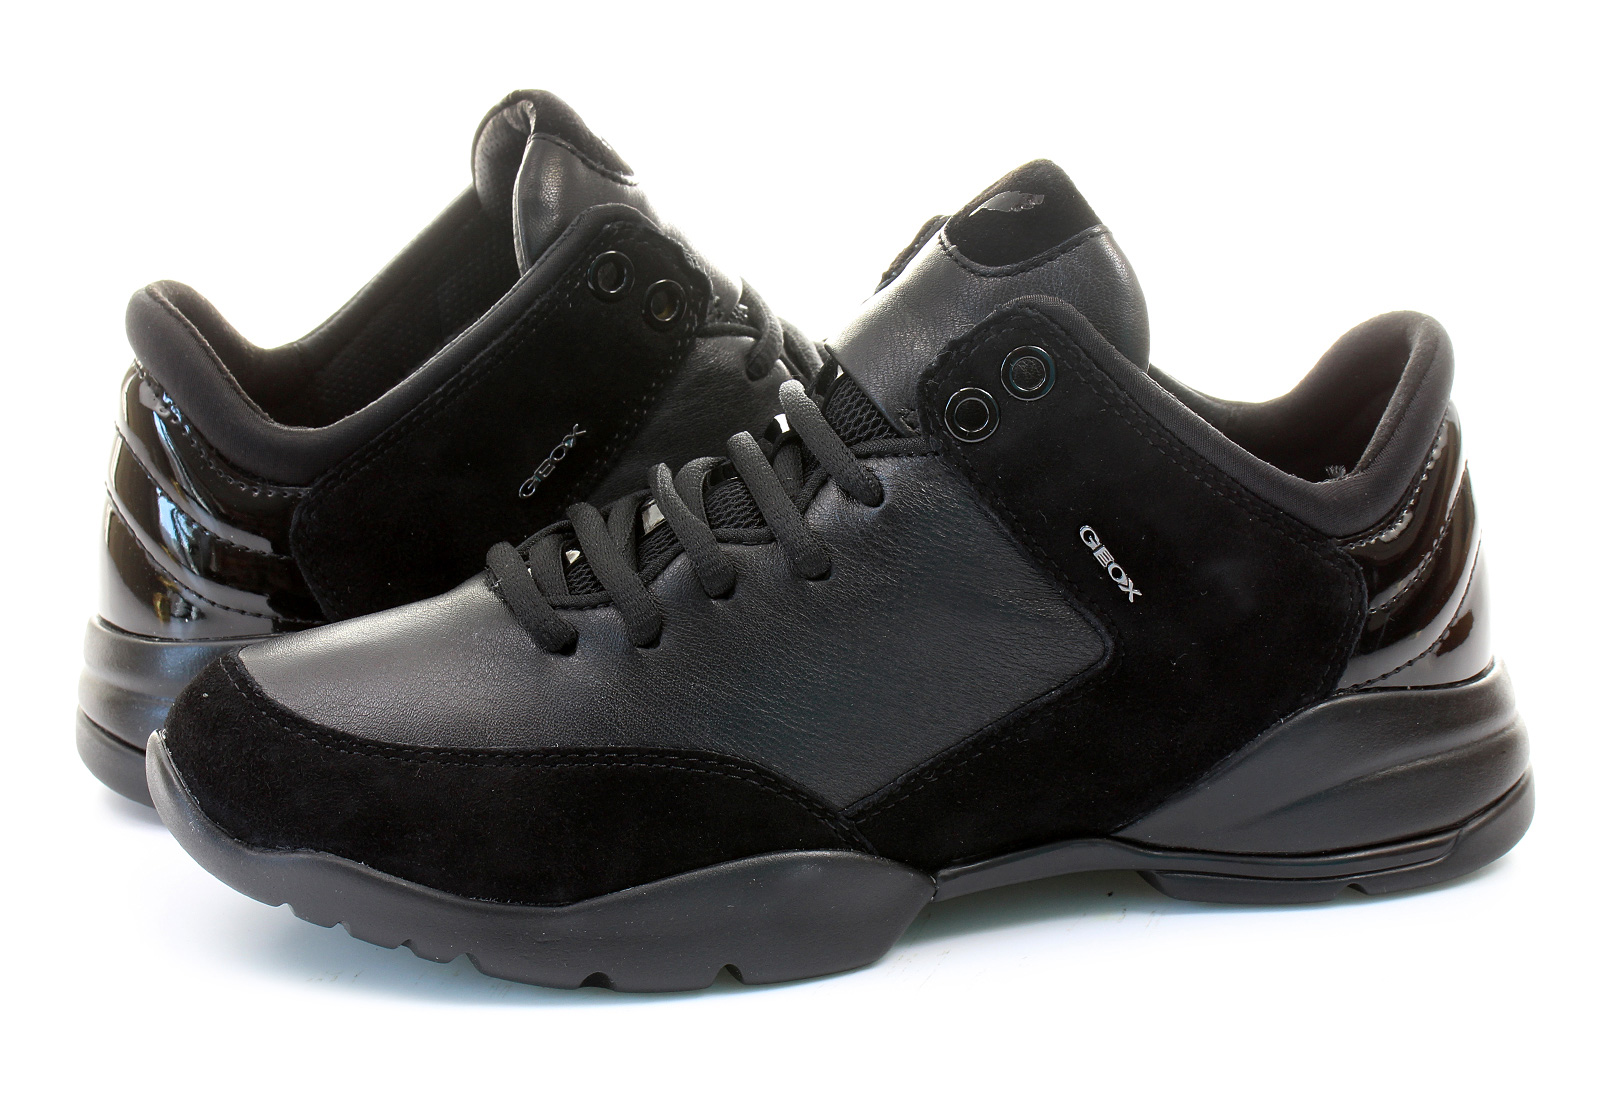 Geox Shoes Sfinge 2na 8521 9999 Online Shop For